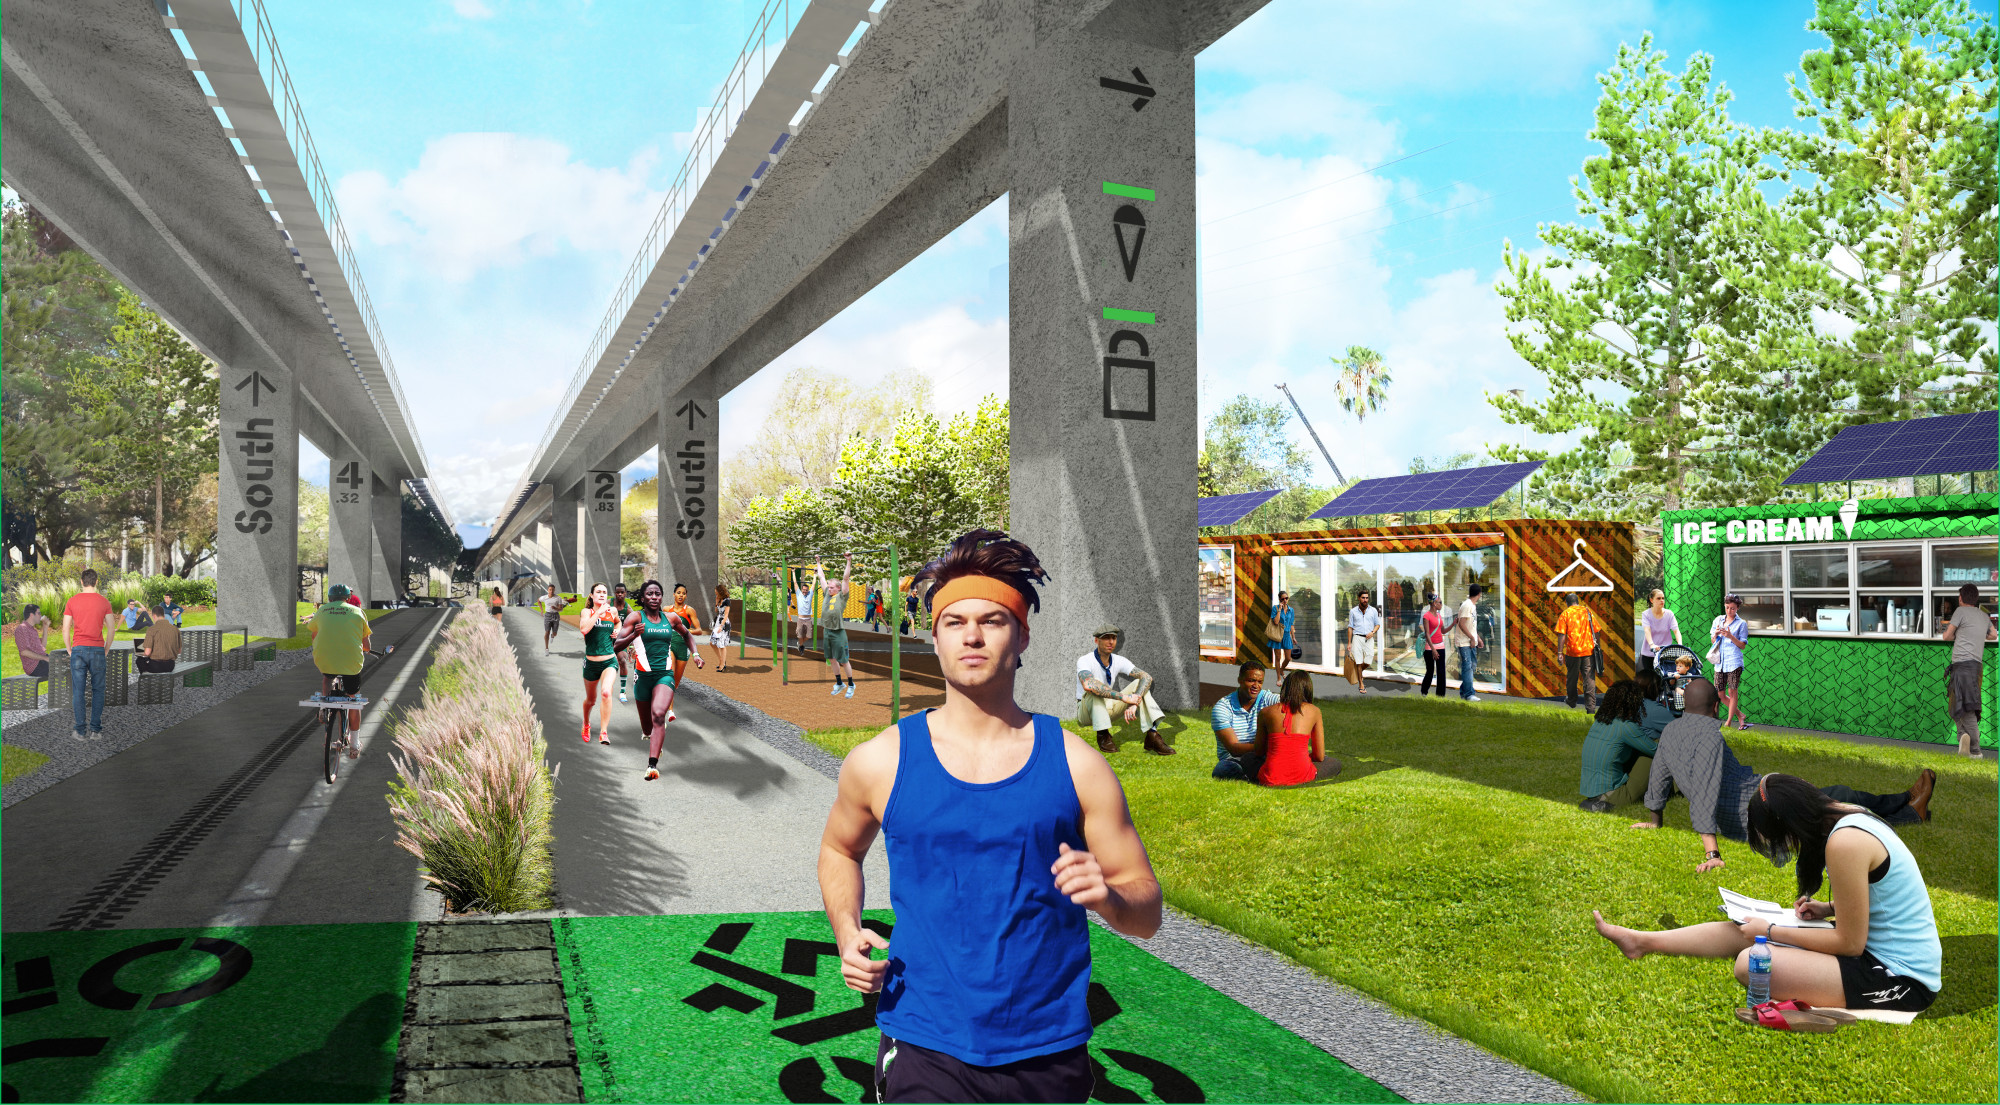 The future Underline at University Metrorail station will have space for small gatherings and temporary pop-ups to serve as a small- business incubator for nearby entrepreneurs. (Courtesy of James Corner Field Operations and Friends of The Underline)